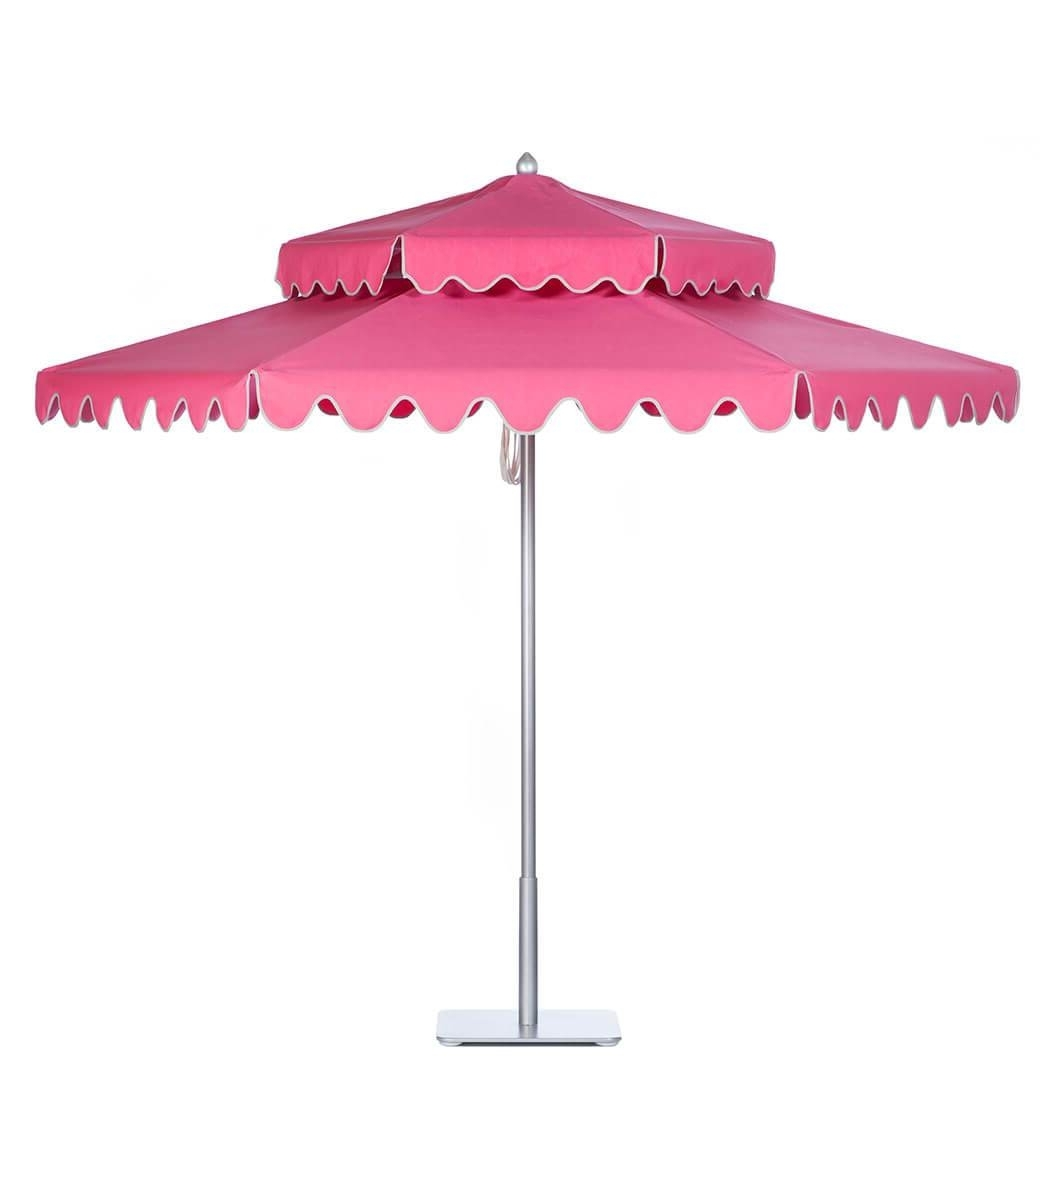 Home – Santa Barbara Designs Pertaining To Trendy Pink Patio Umbrellas (Gallery 4 of 20)